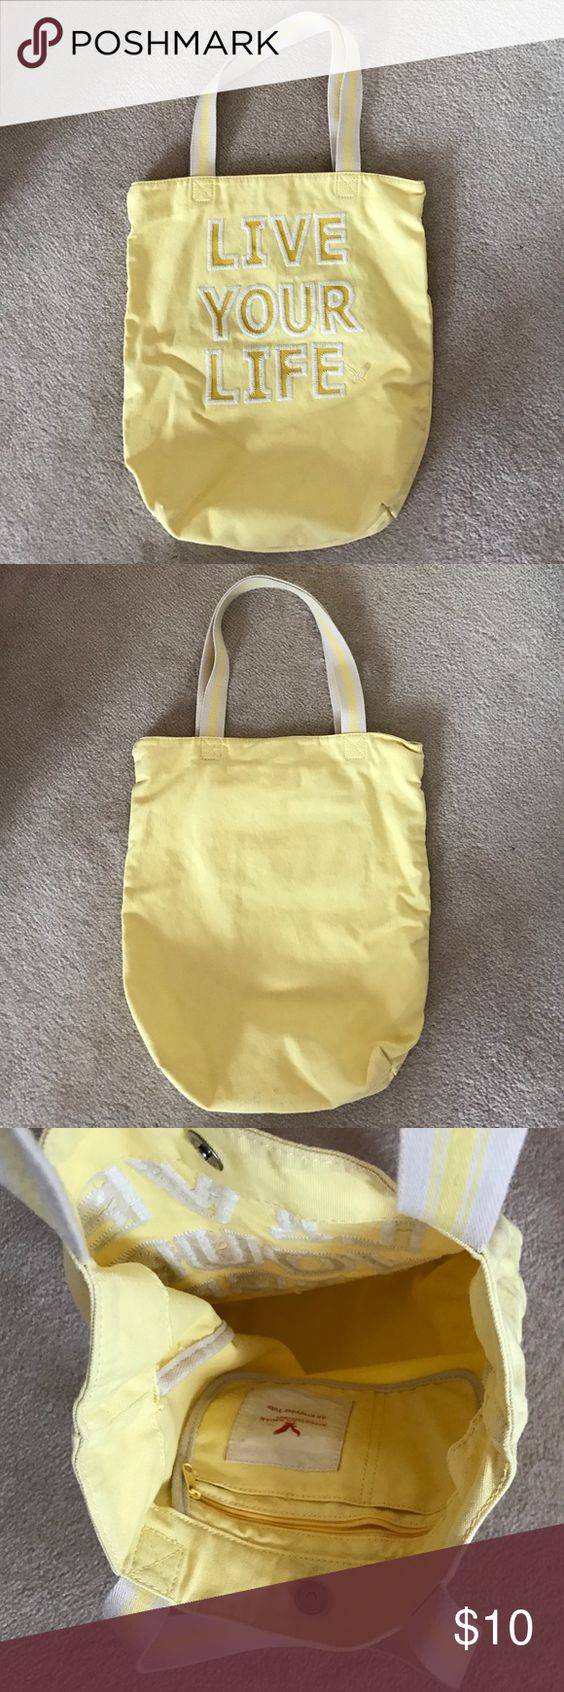 American Eagle Tote Pre-owned Live Your Life embroidered tote bag in yellow. No smell. Snap close. One inside zip pocket and two nonzip pockets. American Eagle Outfitters Bags Totes